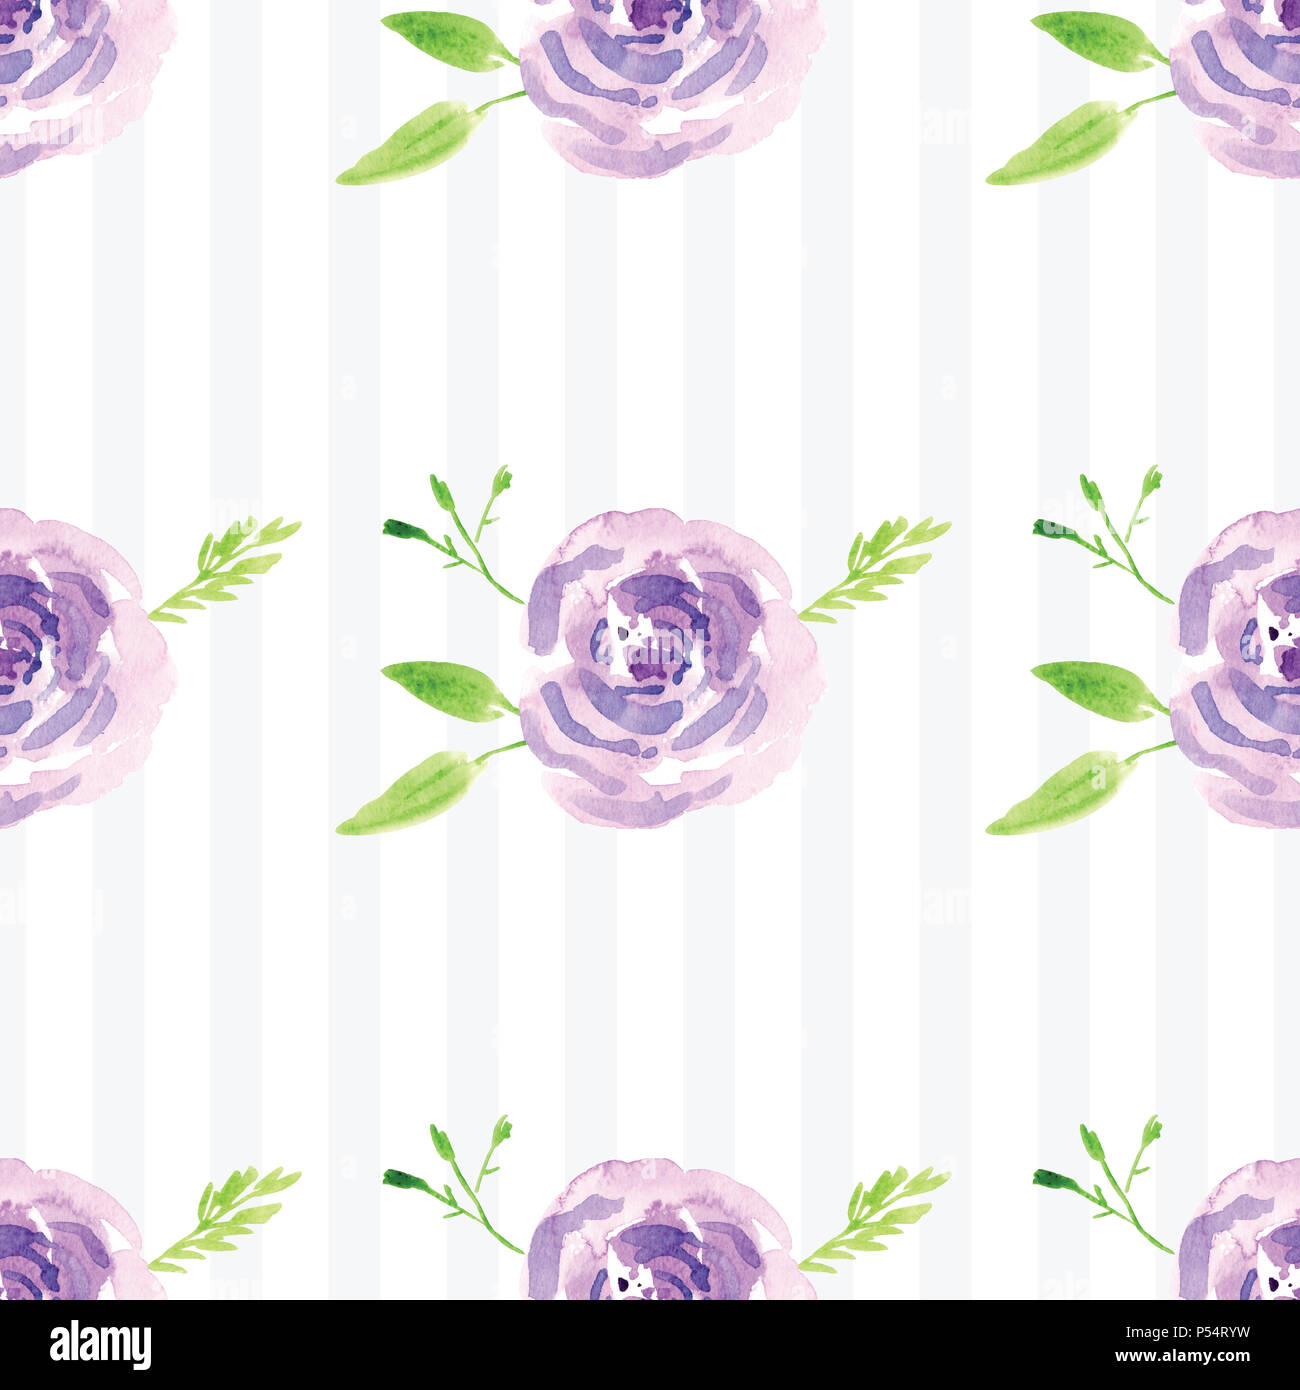 Hand Painted Watercolor Floral Rose Pattern Illustration Of